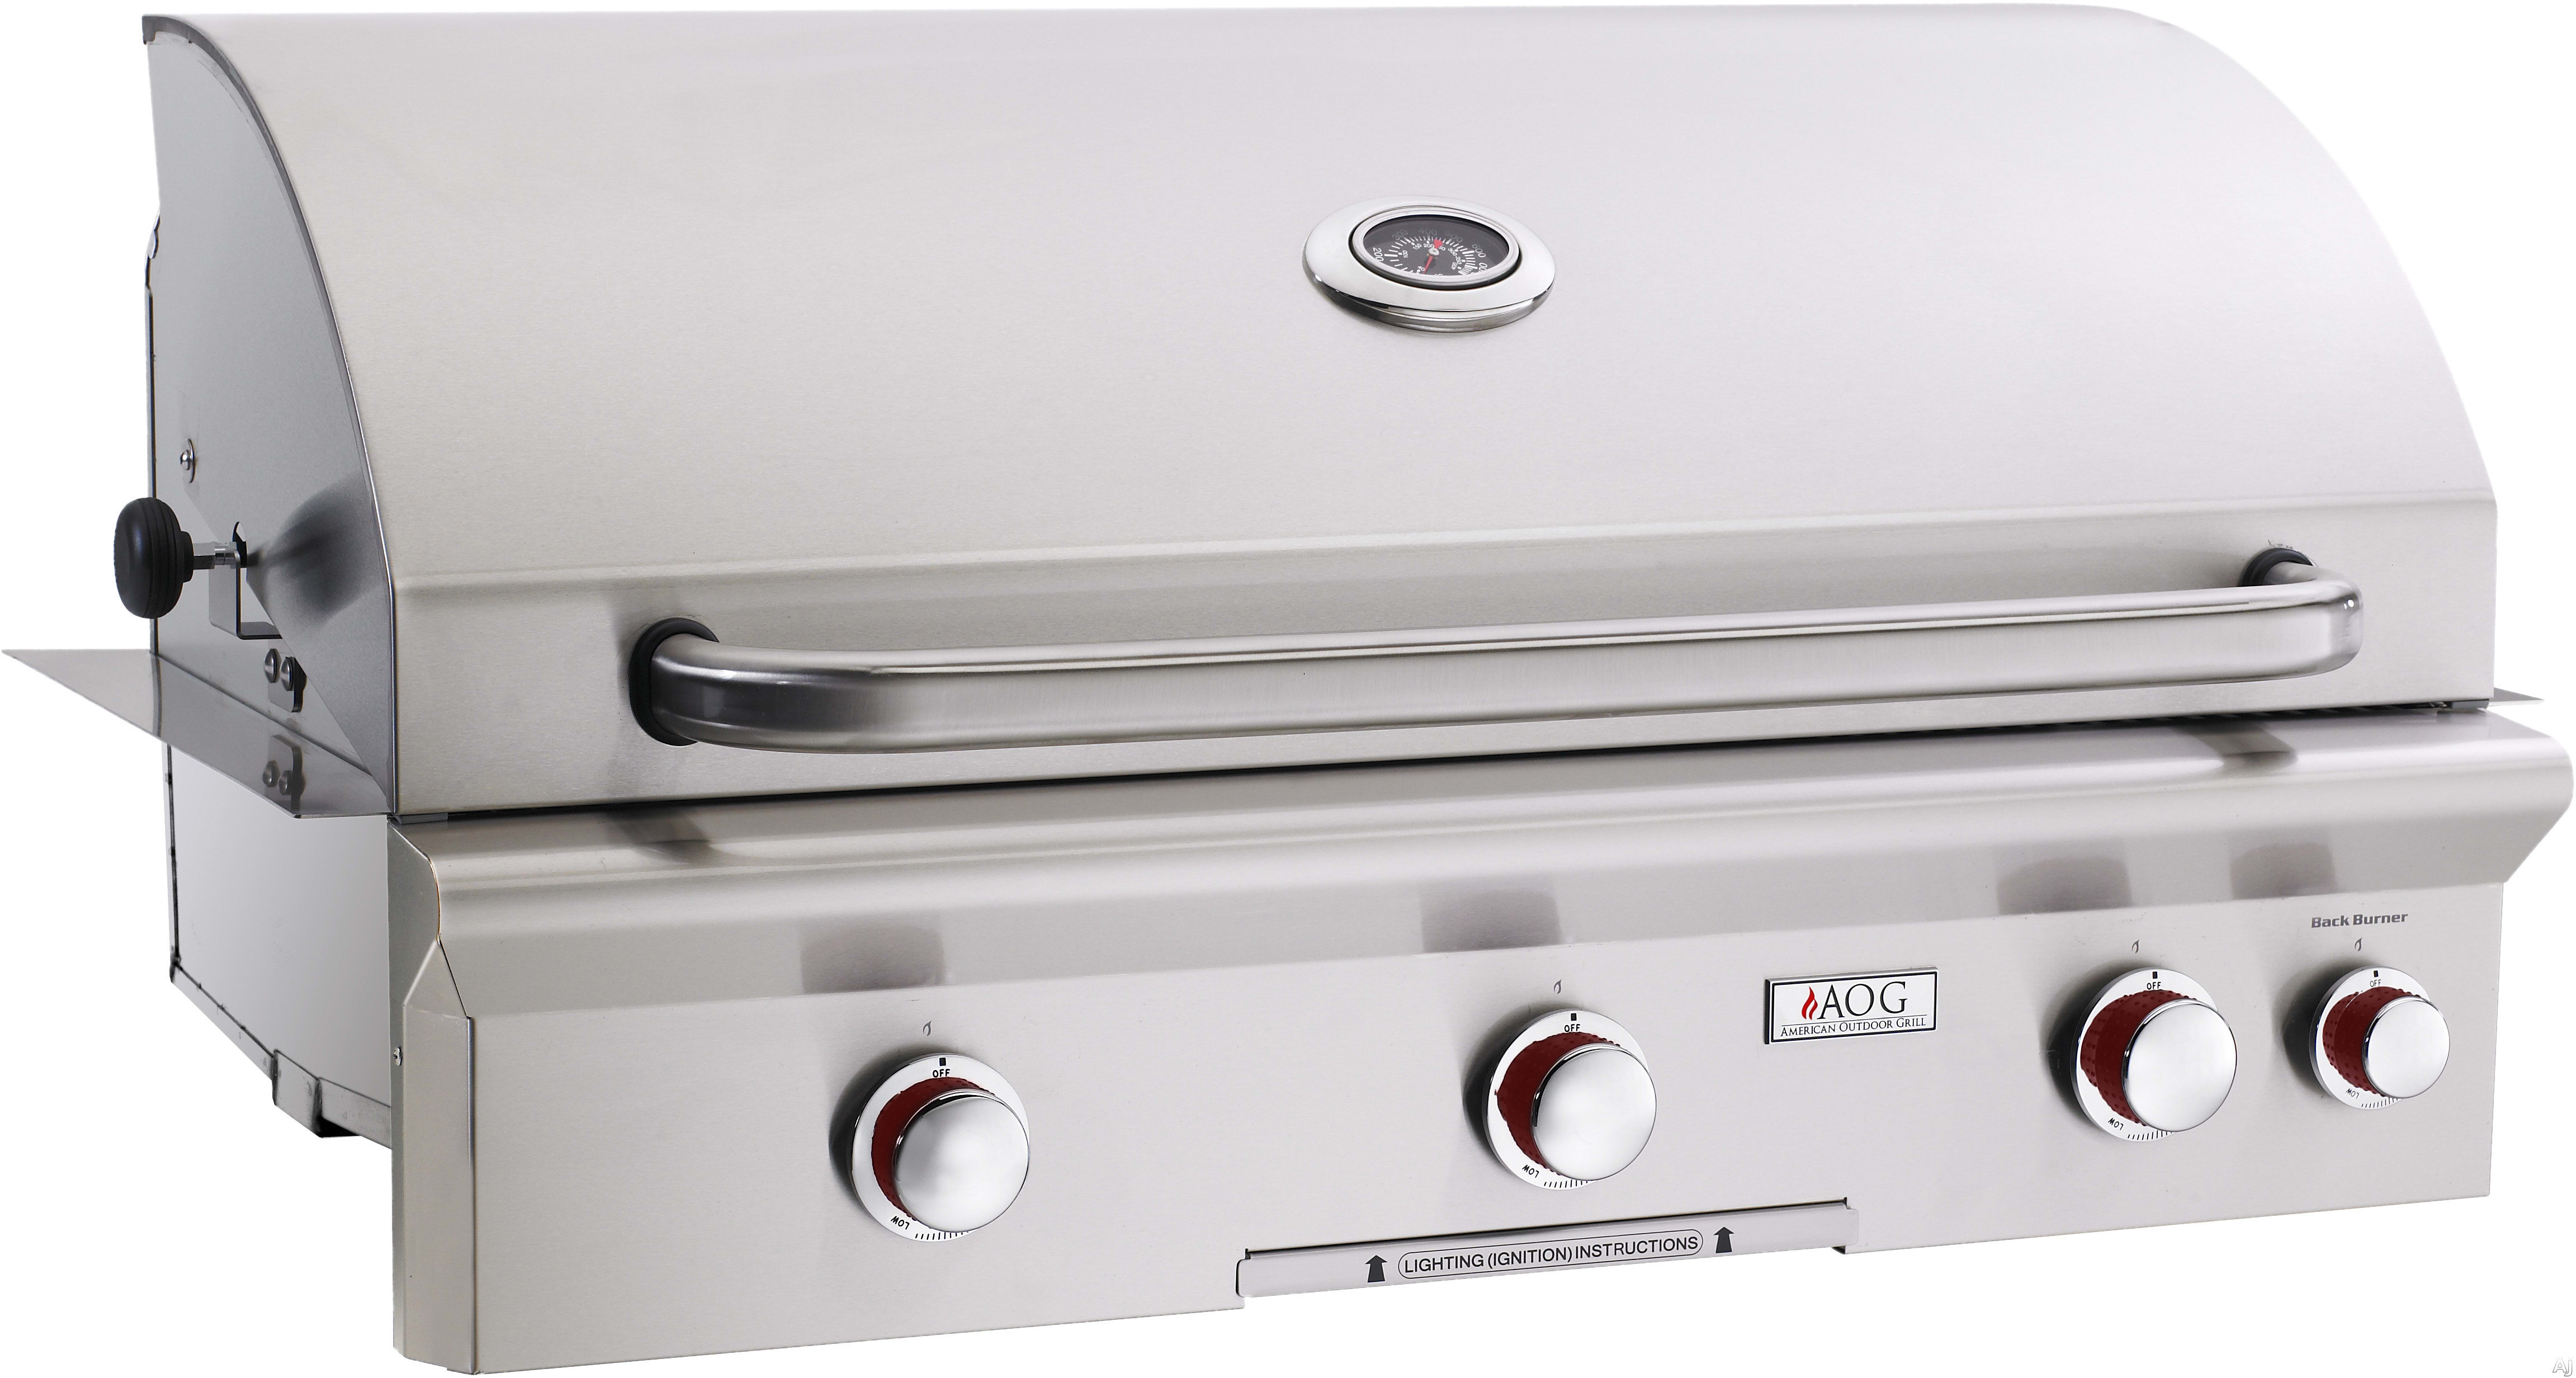 Great American Outdoor Grill 36NBT00SP 36 Inch Built In Gas Grill With 648 Sq.  In. Cooking Surface, 3 16,500 BTU Primary Burners, Analog Thermometer And  Stainless ...